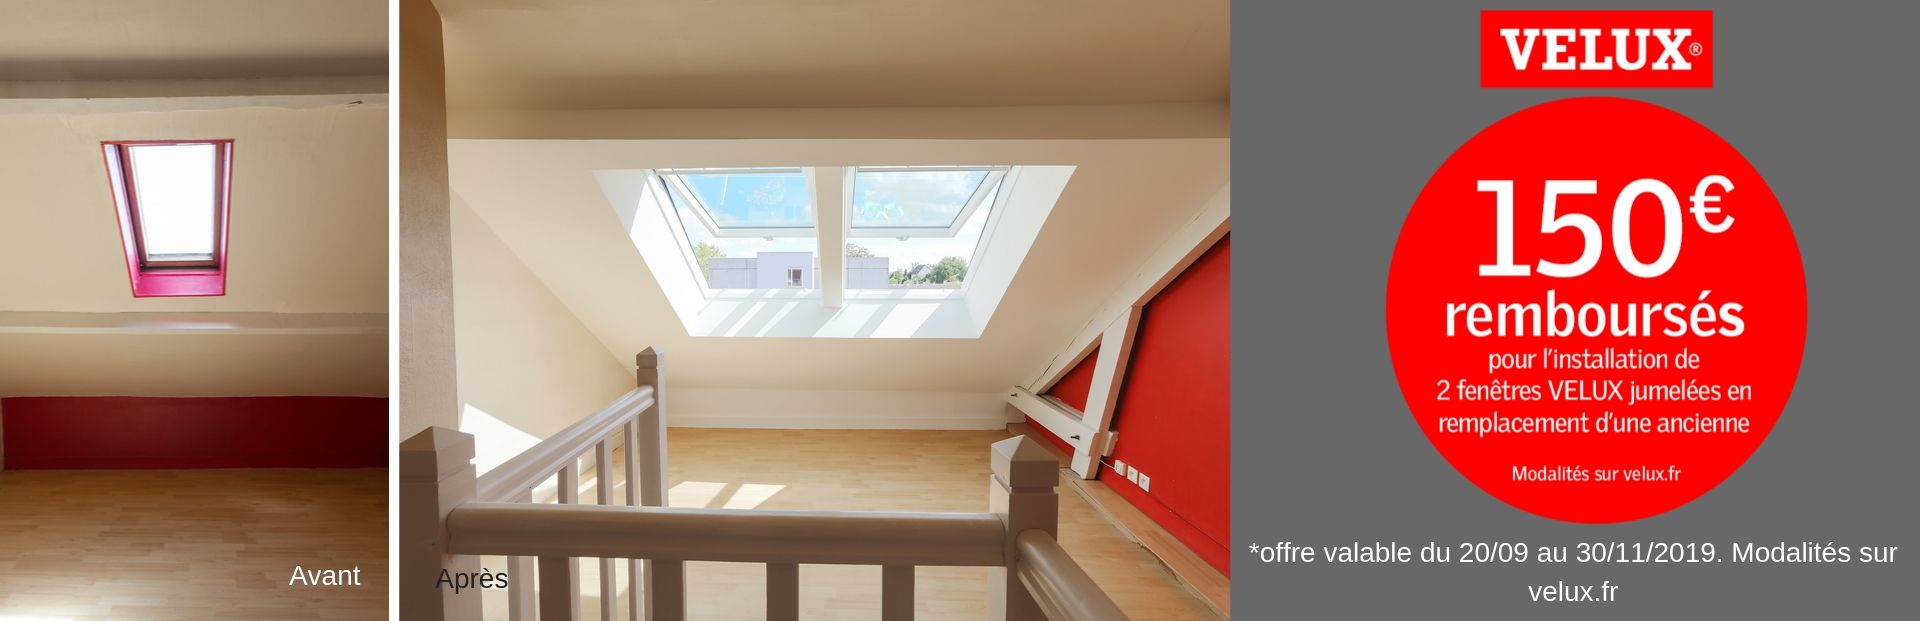 offre-velux